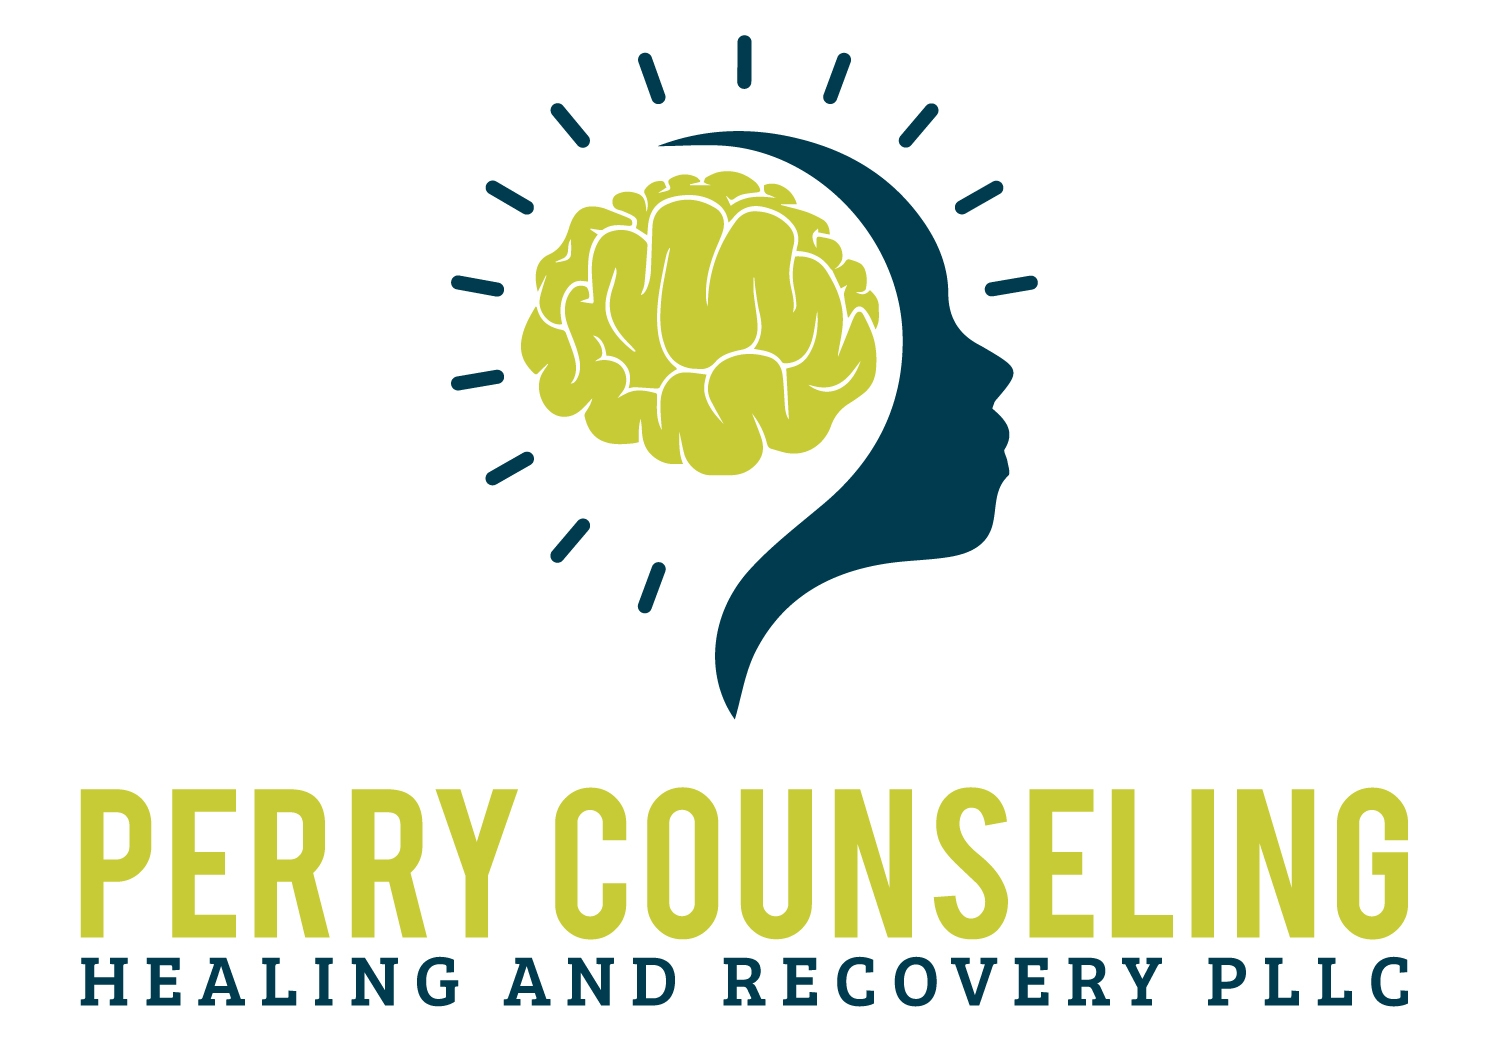 Perry Counseling, Healing and Recovery PLLC